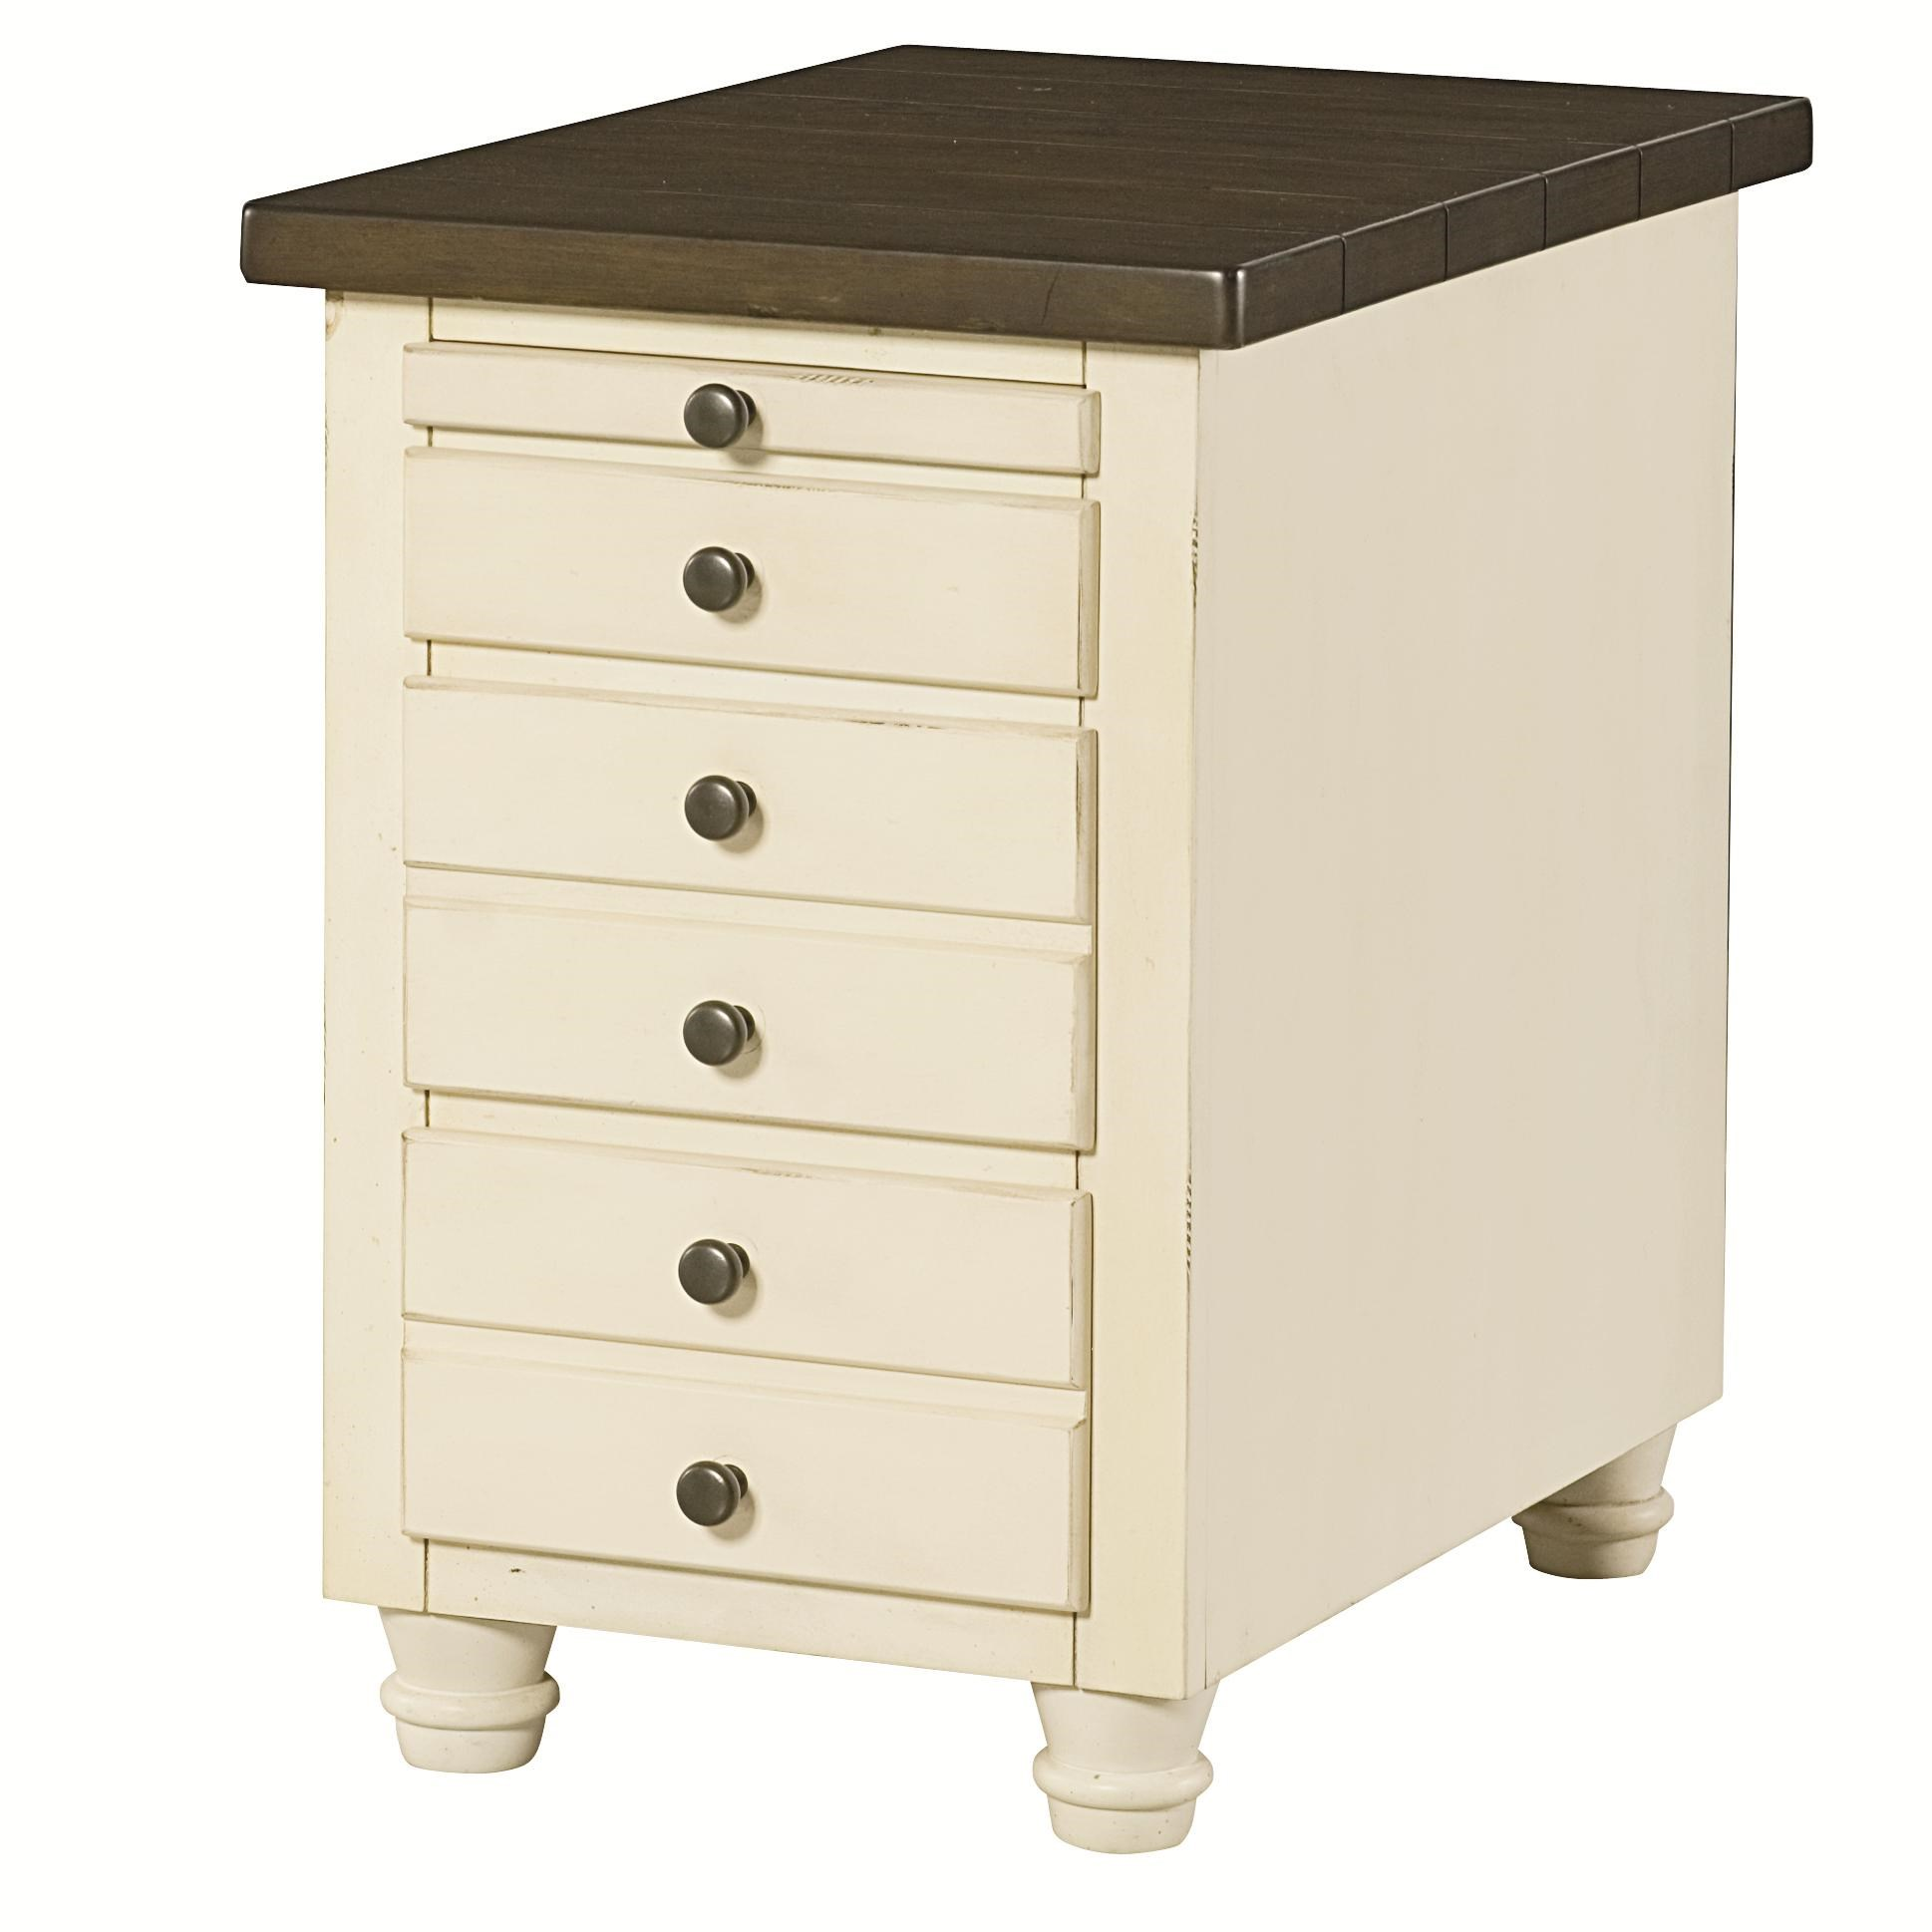 Hammary Heartland Chairside Table Chest with 3 Drawers and  : heartland20346346 916 b0jpgscalebothampwidth500ampheight500ampfsharpen25ampdown from www.wayside-furniture.com size 500 x 500 jpeg 24kB